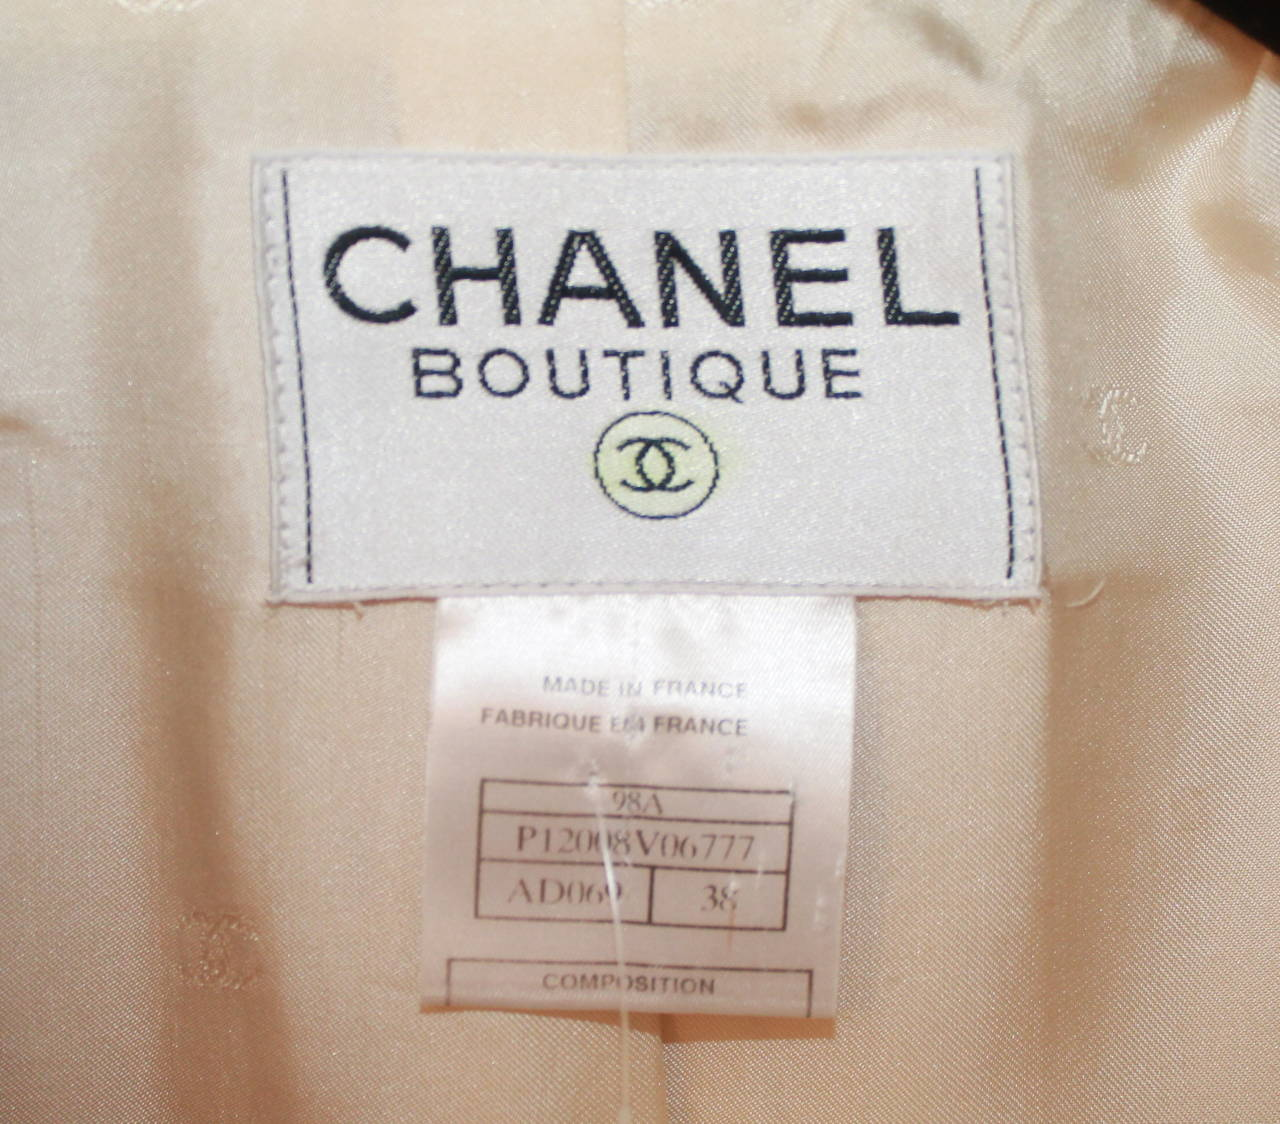 Chanel 1998 Vintage Creme Mohair & Wool Blend Jacket - 38 For Sale 2